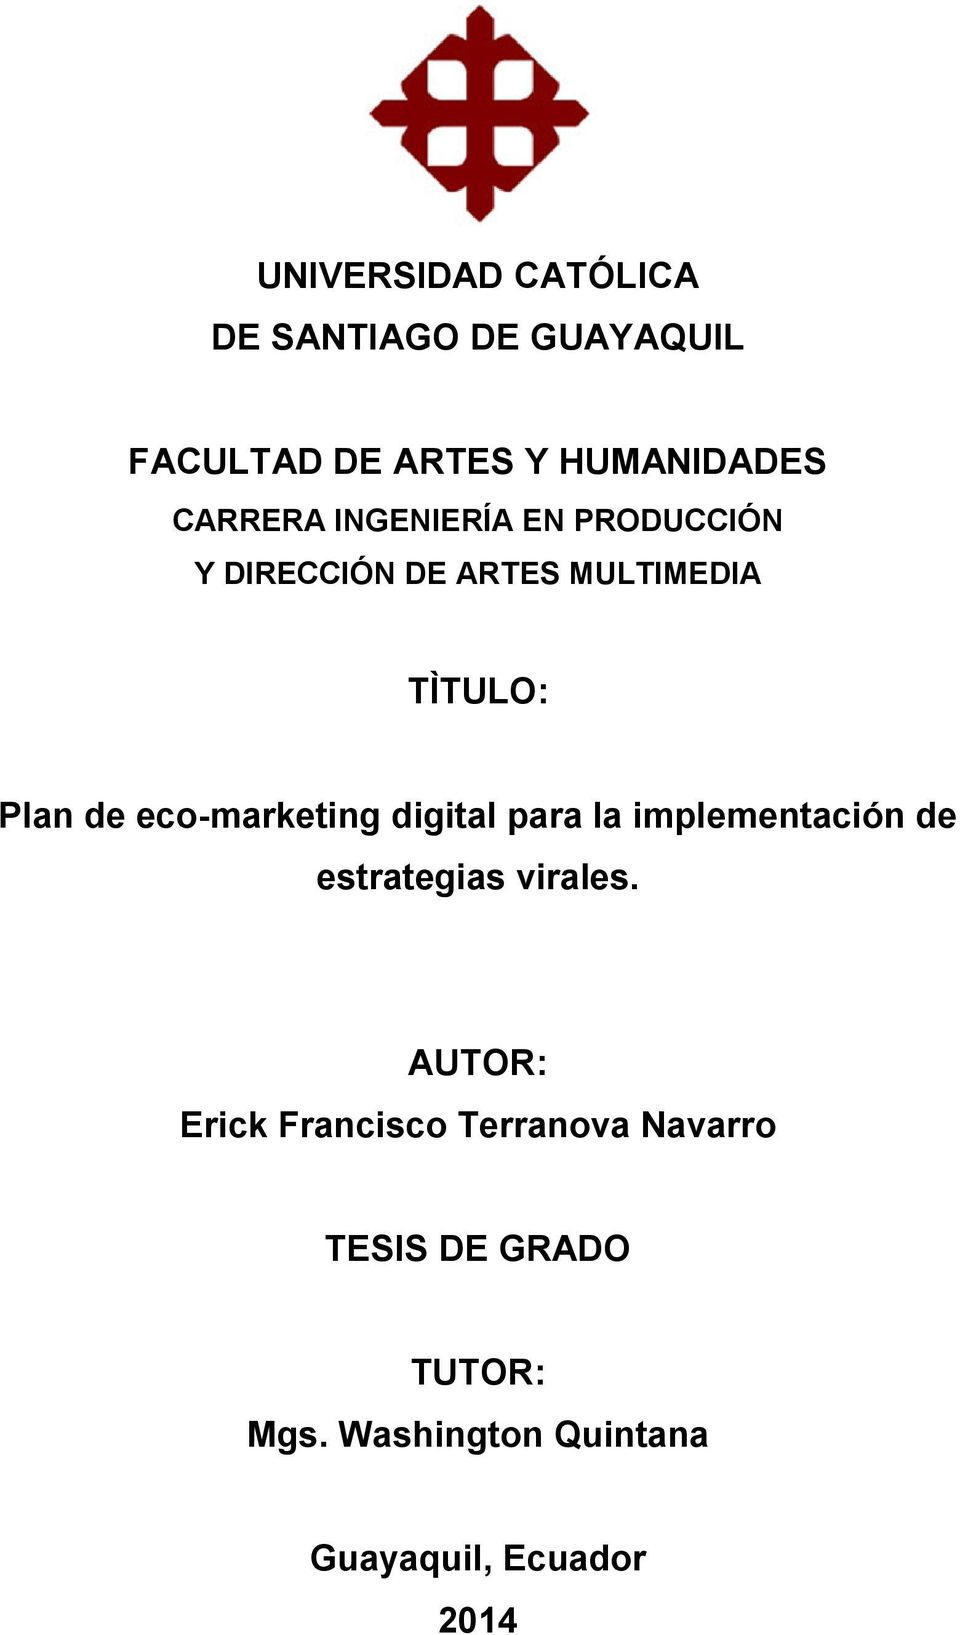 eco-marketing digital para la implementación de estrategias virales.